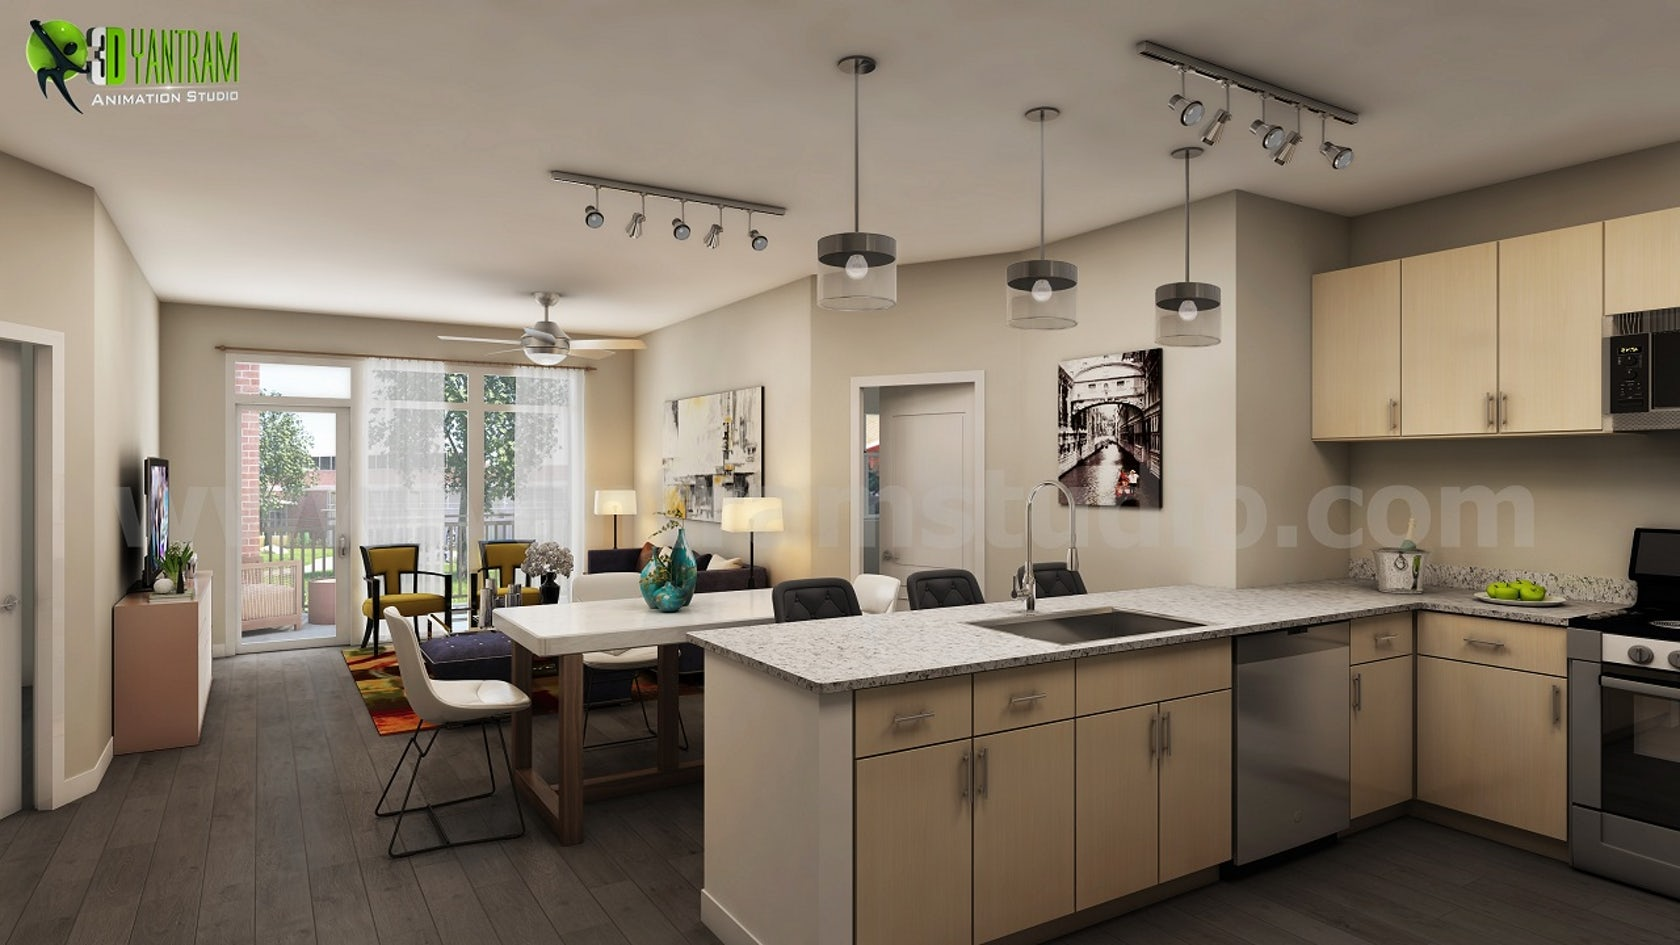 Impressive stylish residential kitchen design by yantram